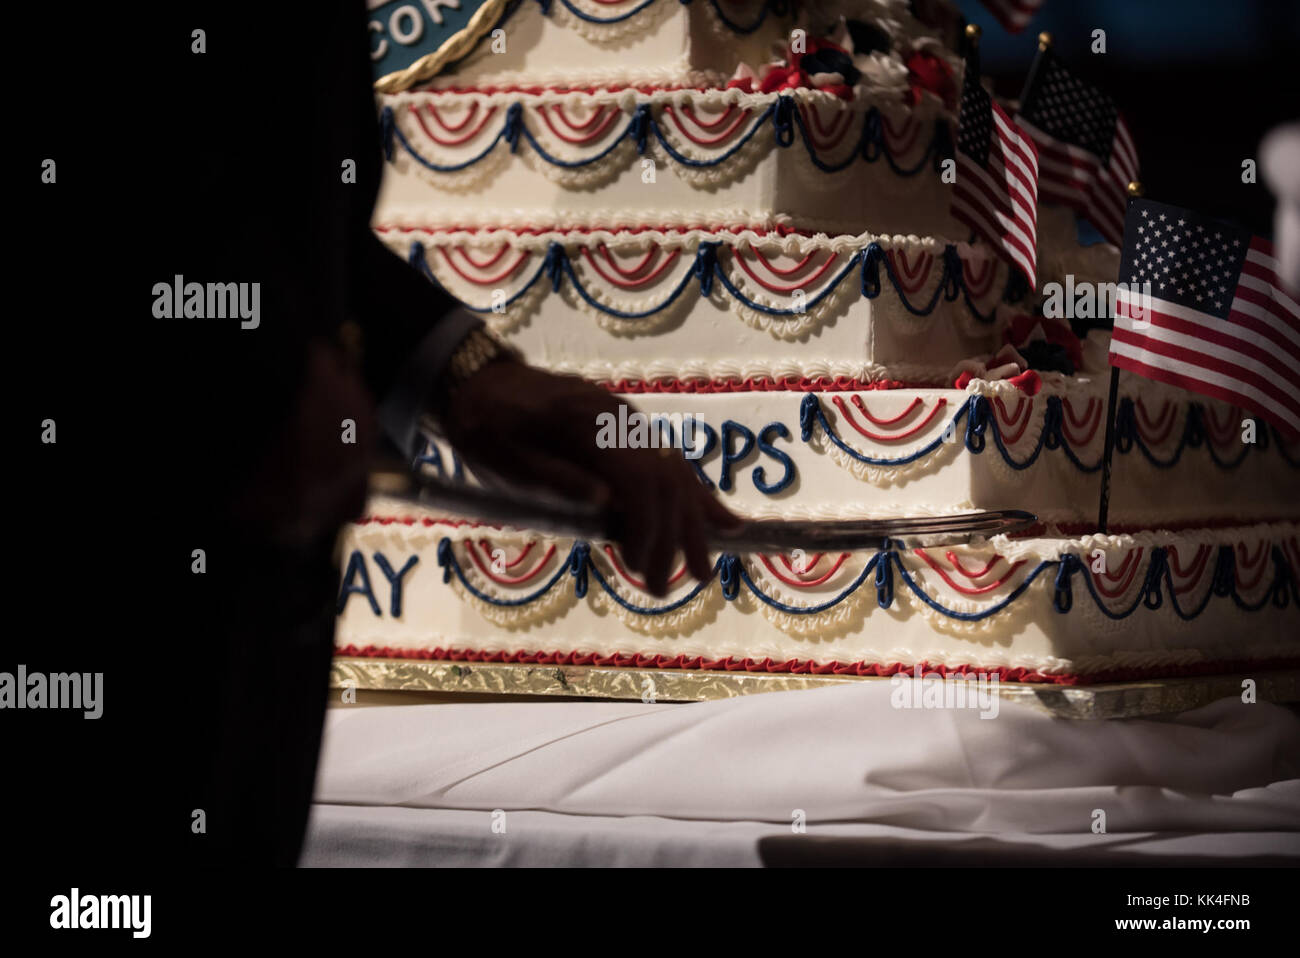 Tom Lyons, Founder and chairman of the Semper Fi Society, cuts the 242nd birthday cake during the Semper Fidelis Society Boston U.S. Marine Corps Birthday Luncheon at the Boston Convention & Exhibition Center, Massachusetts, Nov. 13, 2017. (DoD Photo by U.S. Army Sgt. James K. McCann) Stock Photo